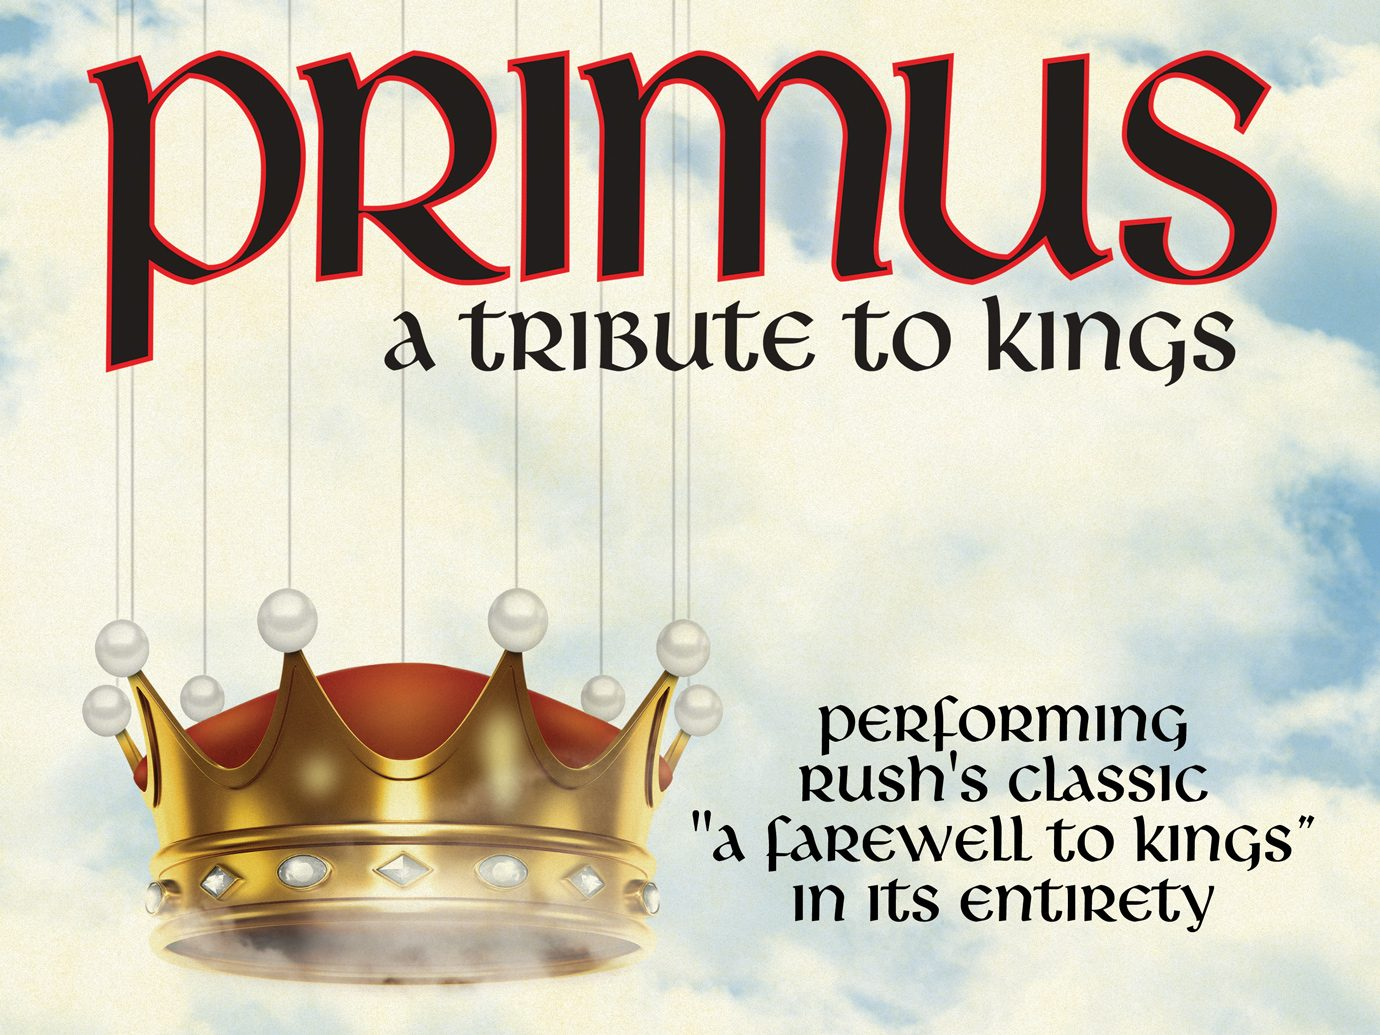 New Date: Primus – A Tribute to Kings